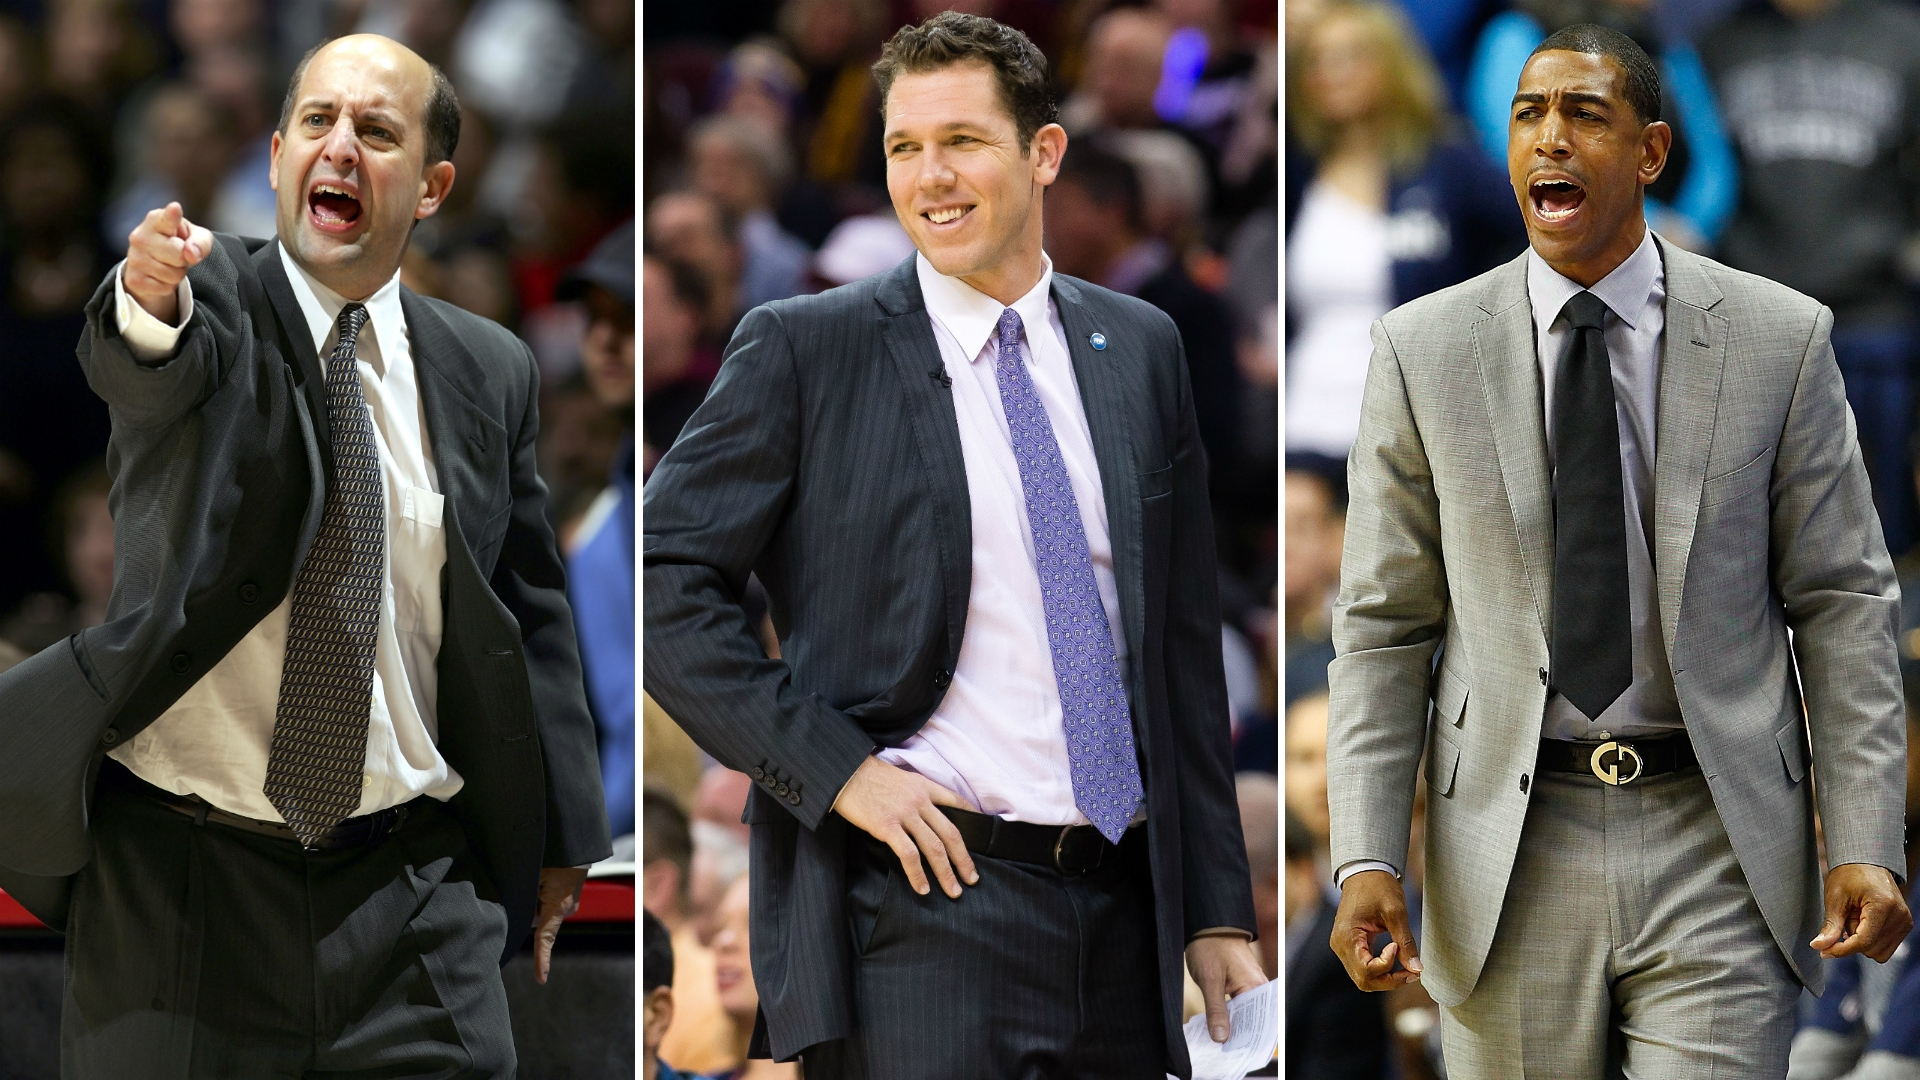 Split-jeff-van-gundy-luke-walton-kevin-ollie-getty-ftr-042416_rkib0uculxn1cl0gpsm6ro78